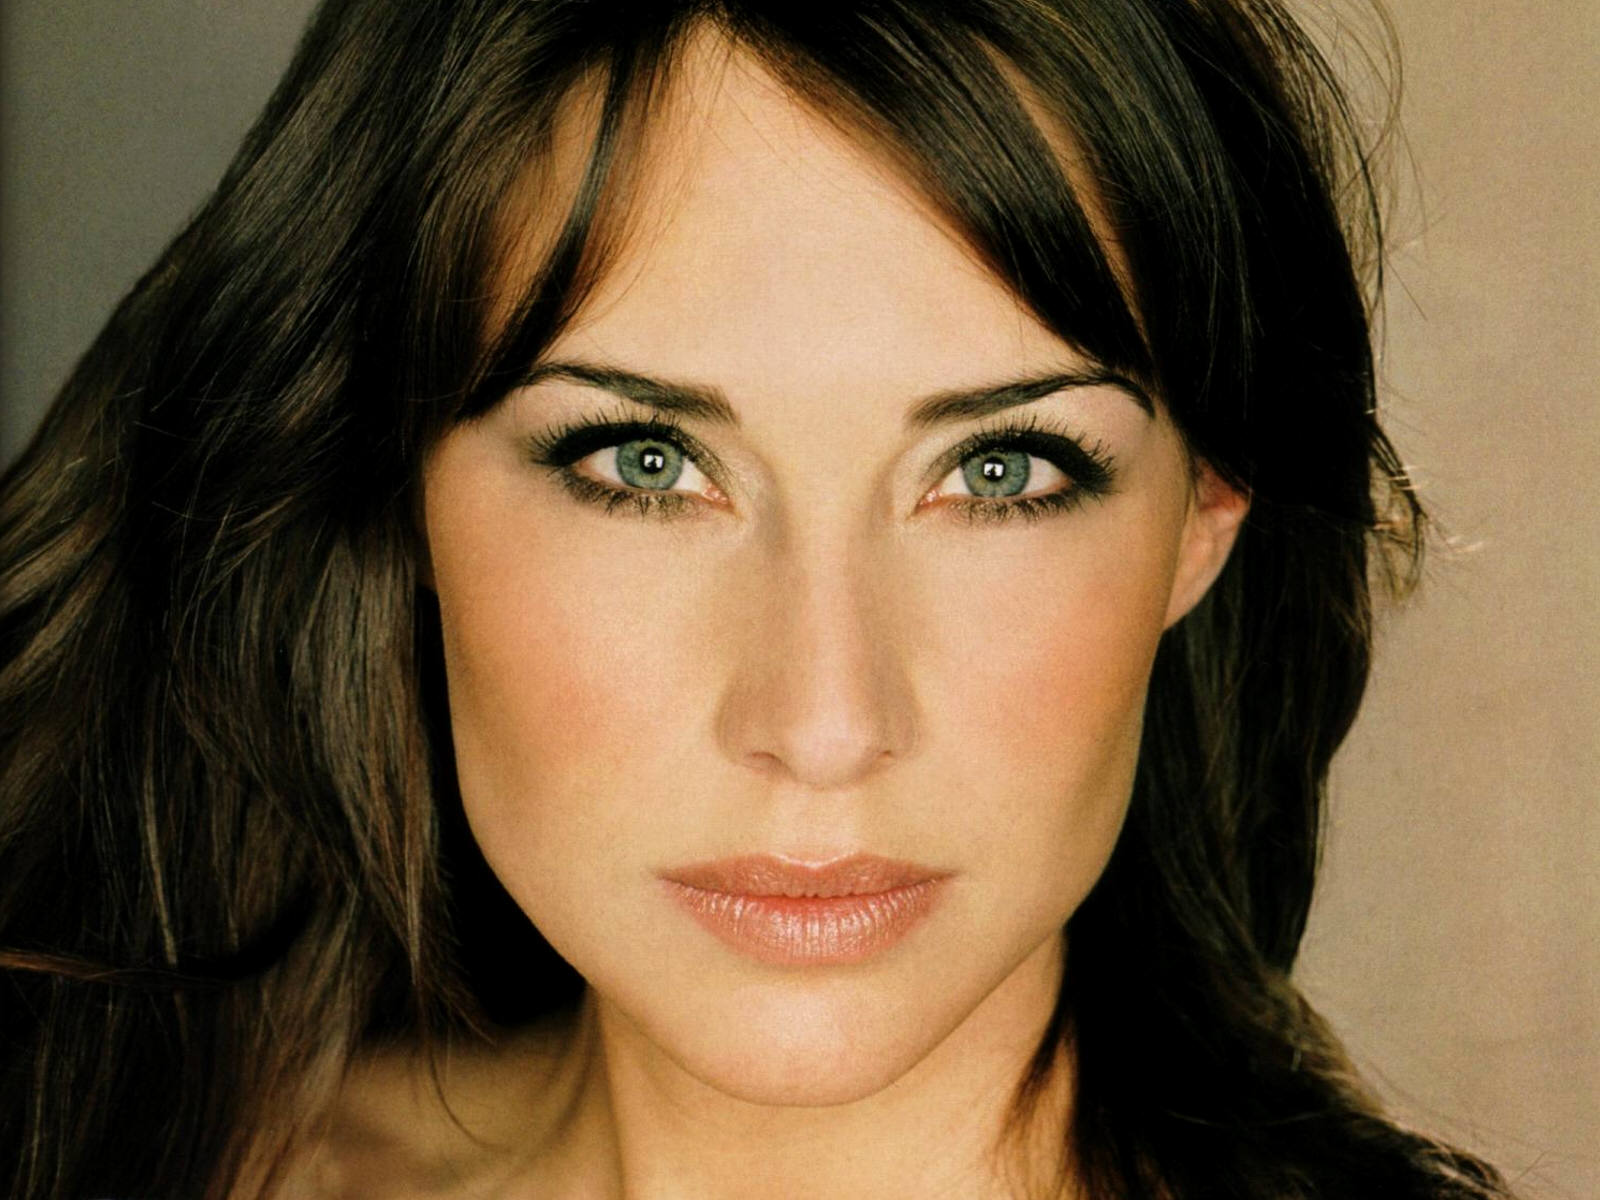 Forlani Claire Nackt. Has Claire Forlani ever been nude?